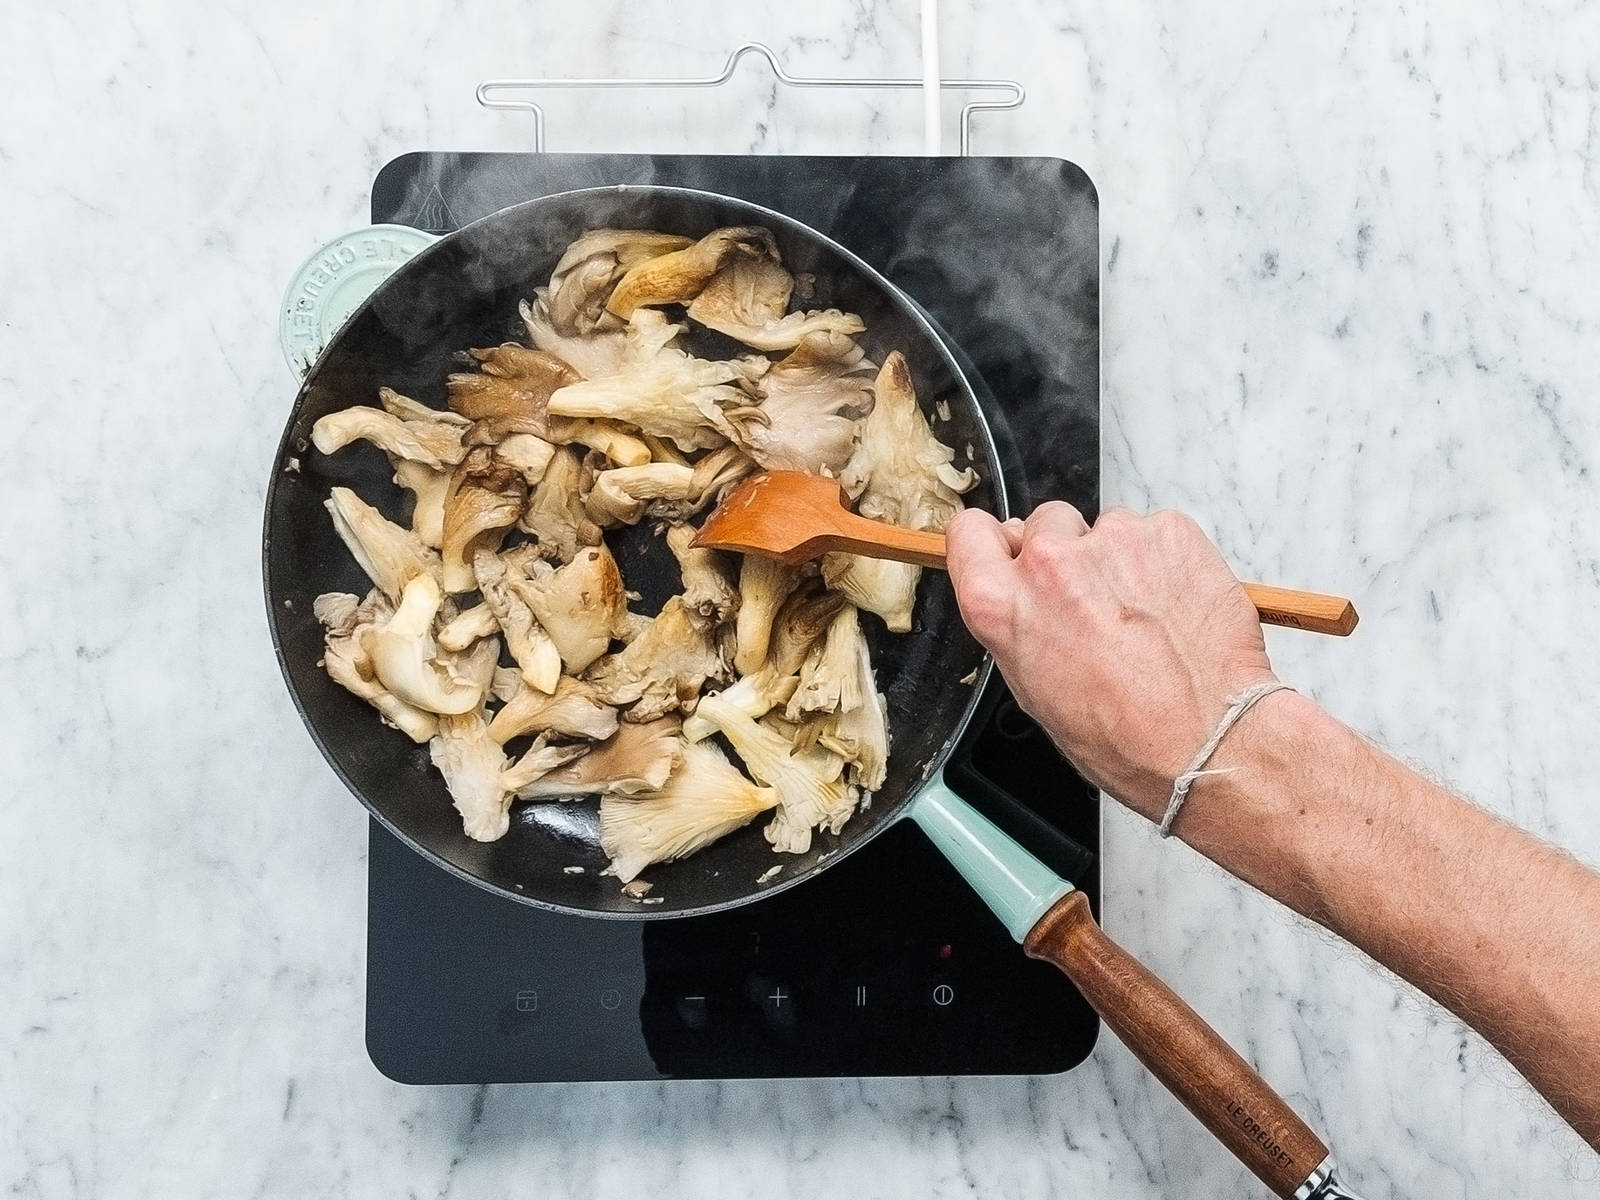 Heat remaining oil in a frying pan. Add oyster mushrooms and fry over medium heat for approx. 8 min. Remove from heat and season with salt to taste.